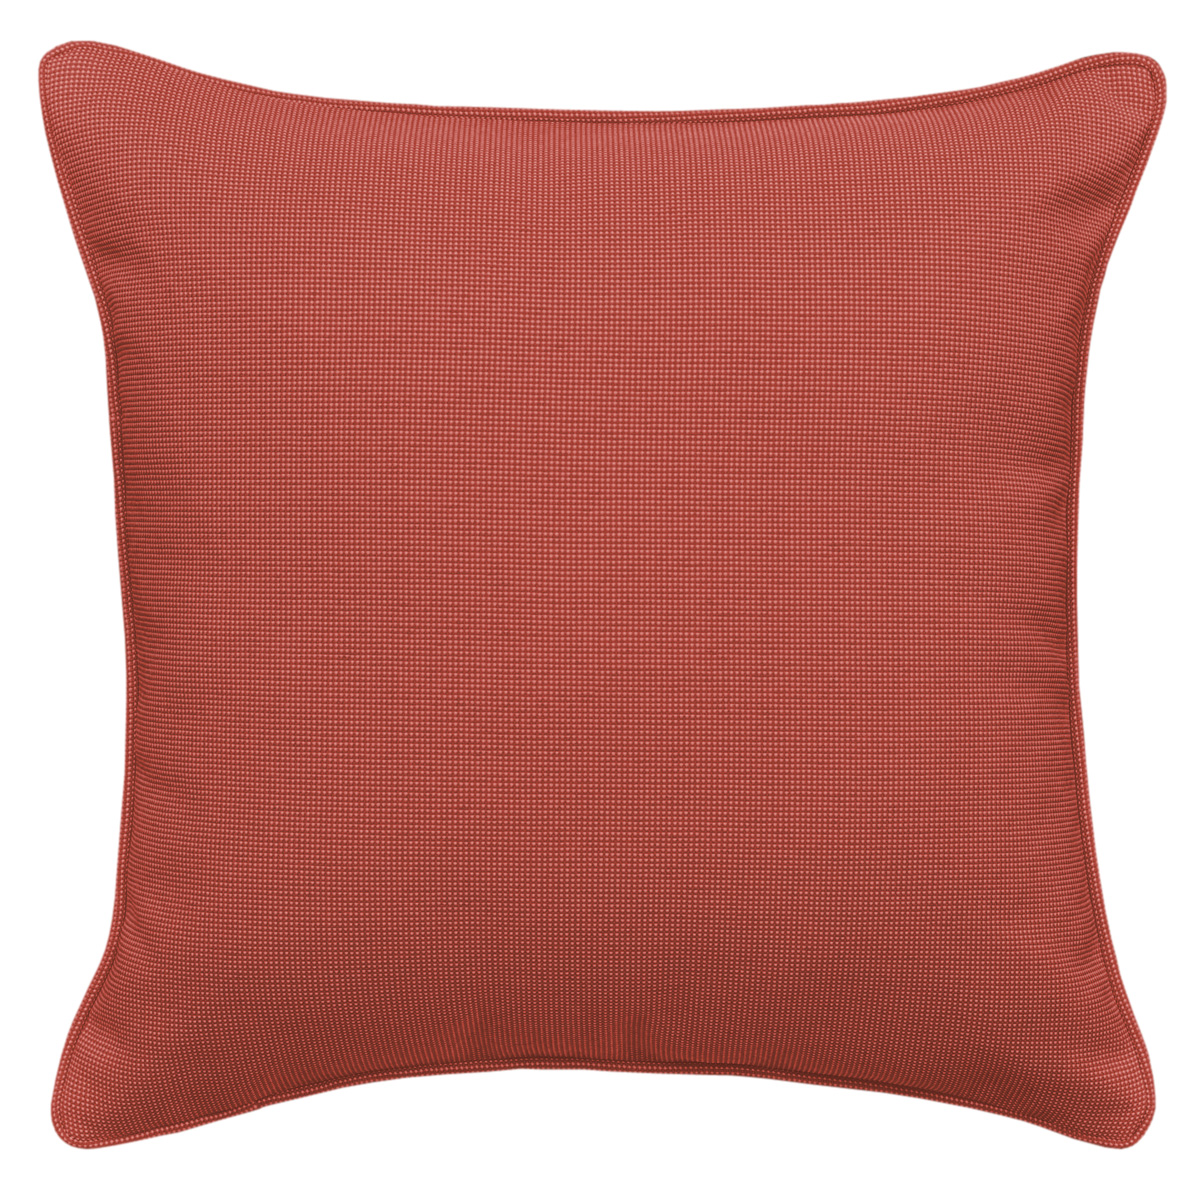 Noosa Lobster Outdoor Cushion - 45x45cm